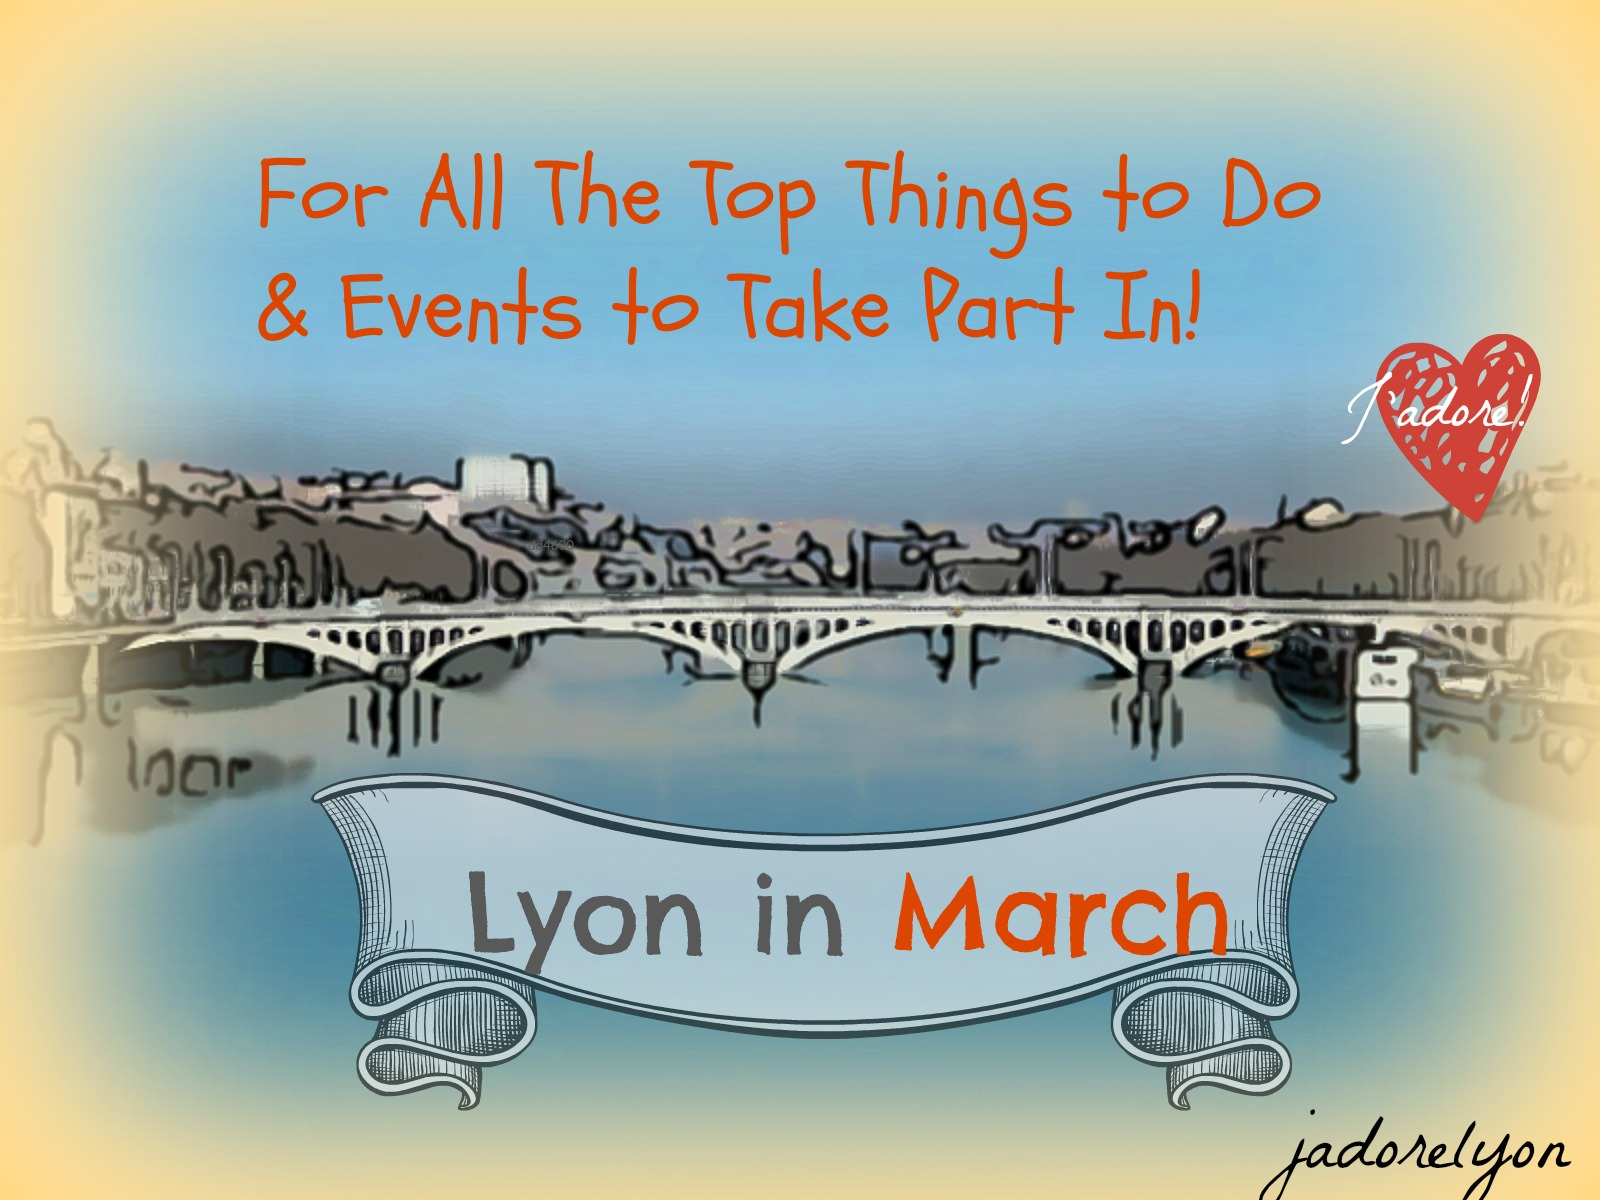 Lyon in March